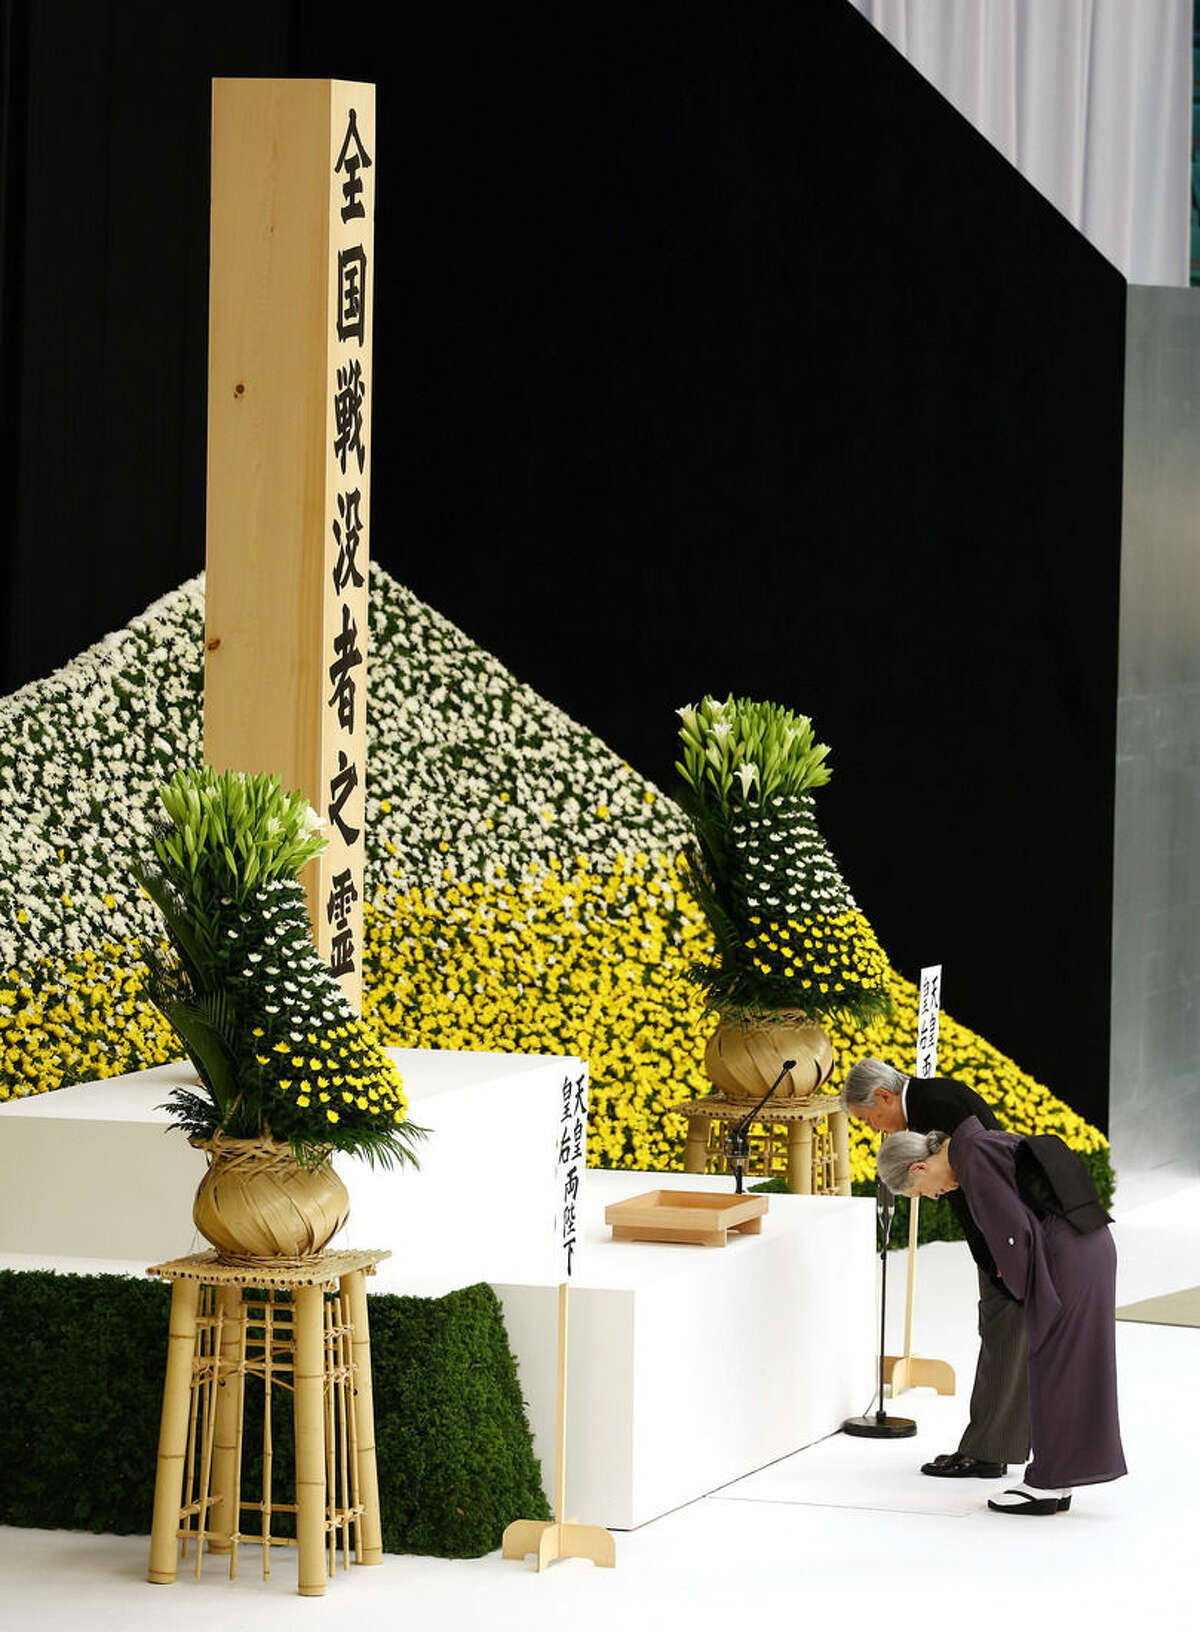 Japan's Emperor Akihito and Empress Michiko bow before the main altar decorated with huge bank of chrysanthemums during a memorial service at Nippon Budokan martial arts hall in Tokyo, Saturday, Aug. 15, 2015. Japan marked Saturday the 70th anniversary of the end of World War II. (AP Photo/Shizuo Kambayashi)